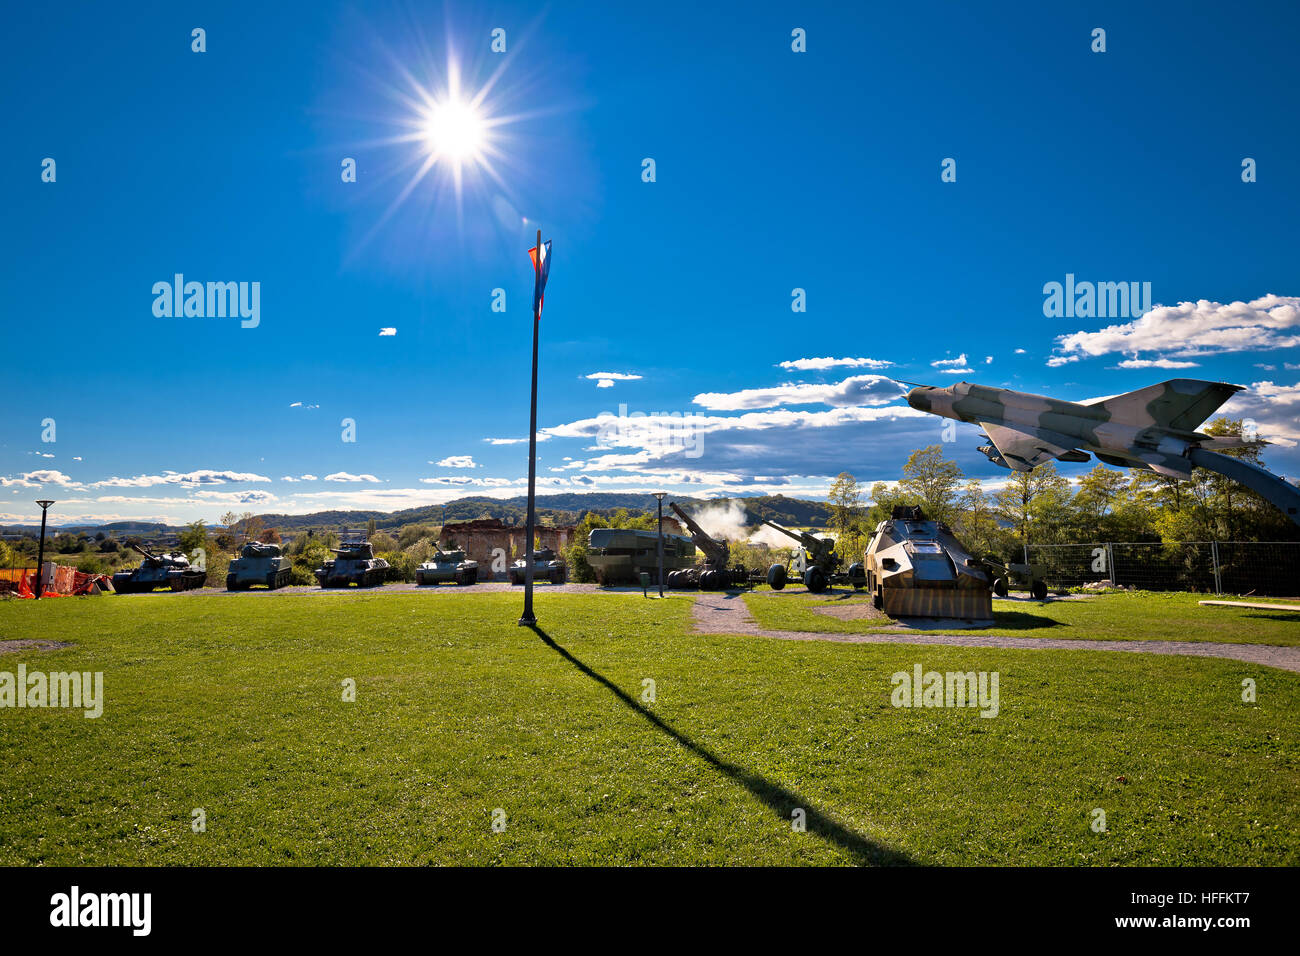 Military tanks and fighter jet with sun rays view, Karlovac, Croatia - Stock Image